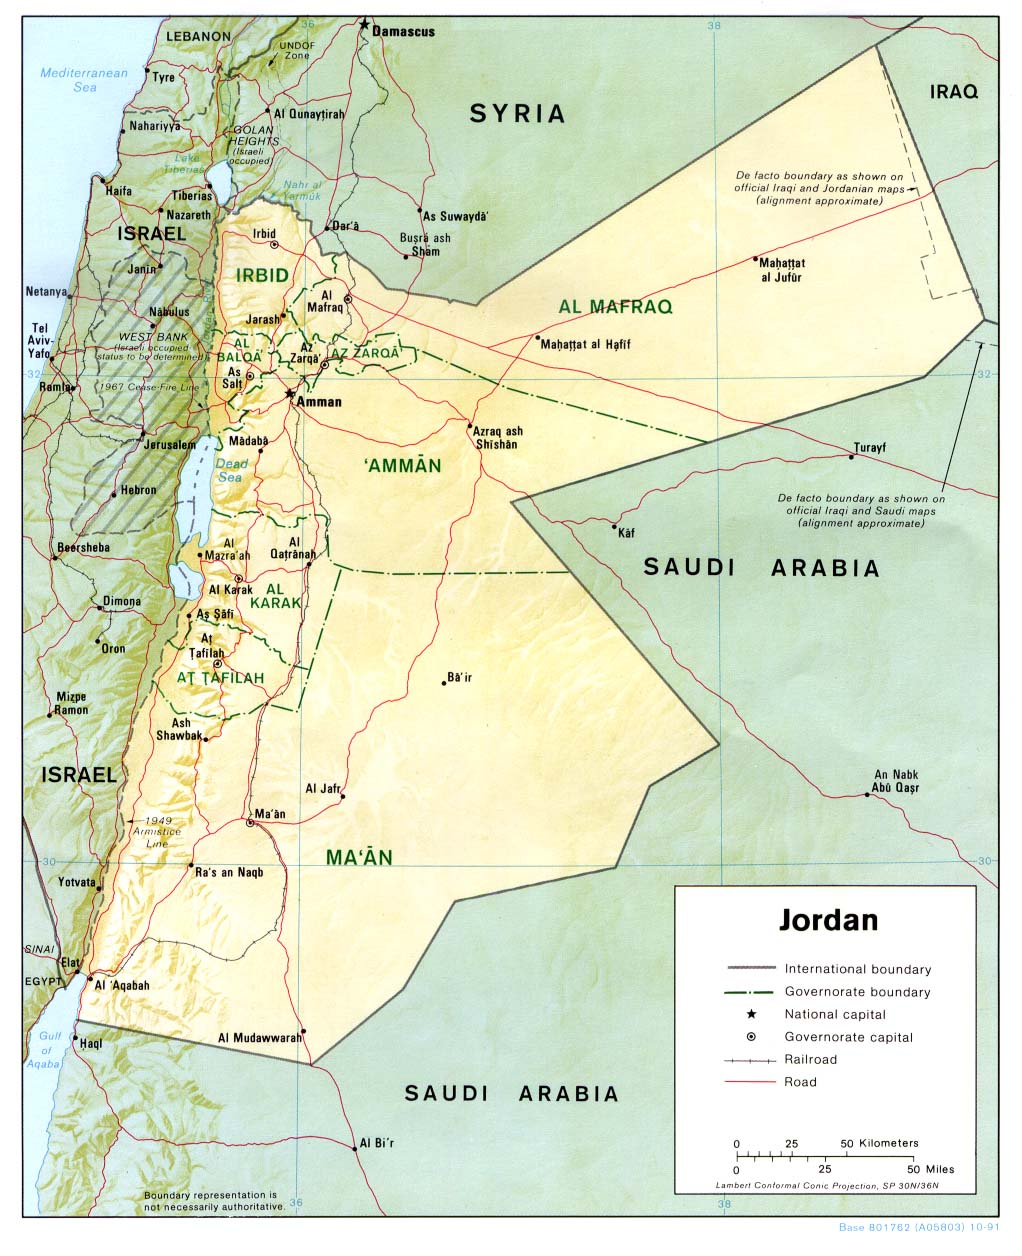 WWWVL History Index - Jordan map download